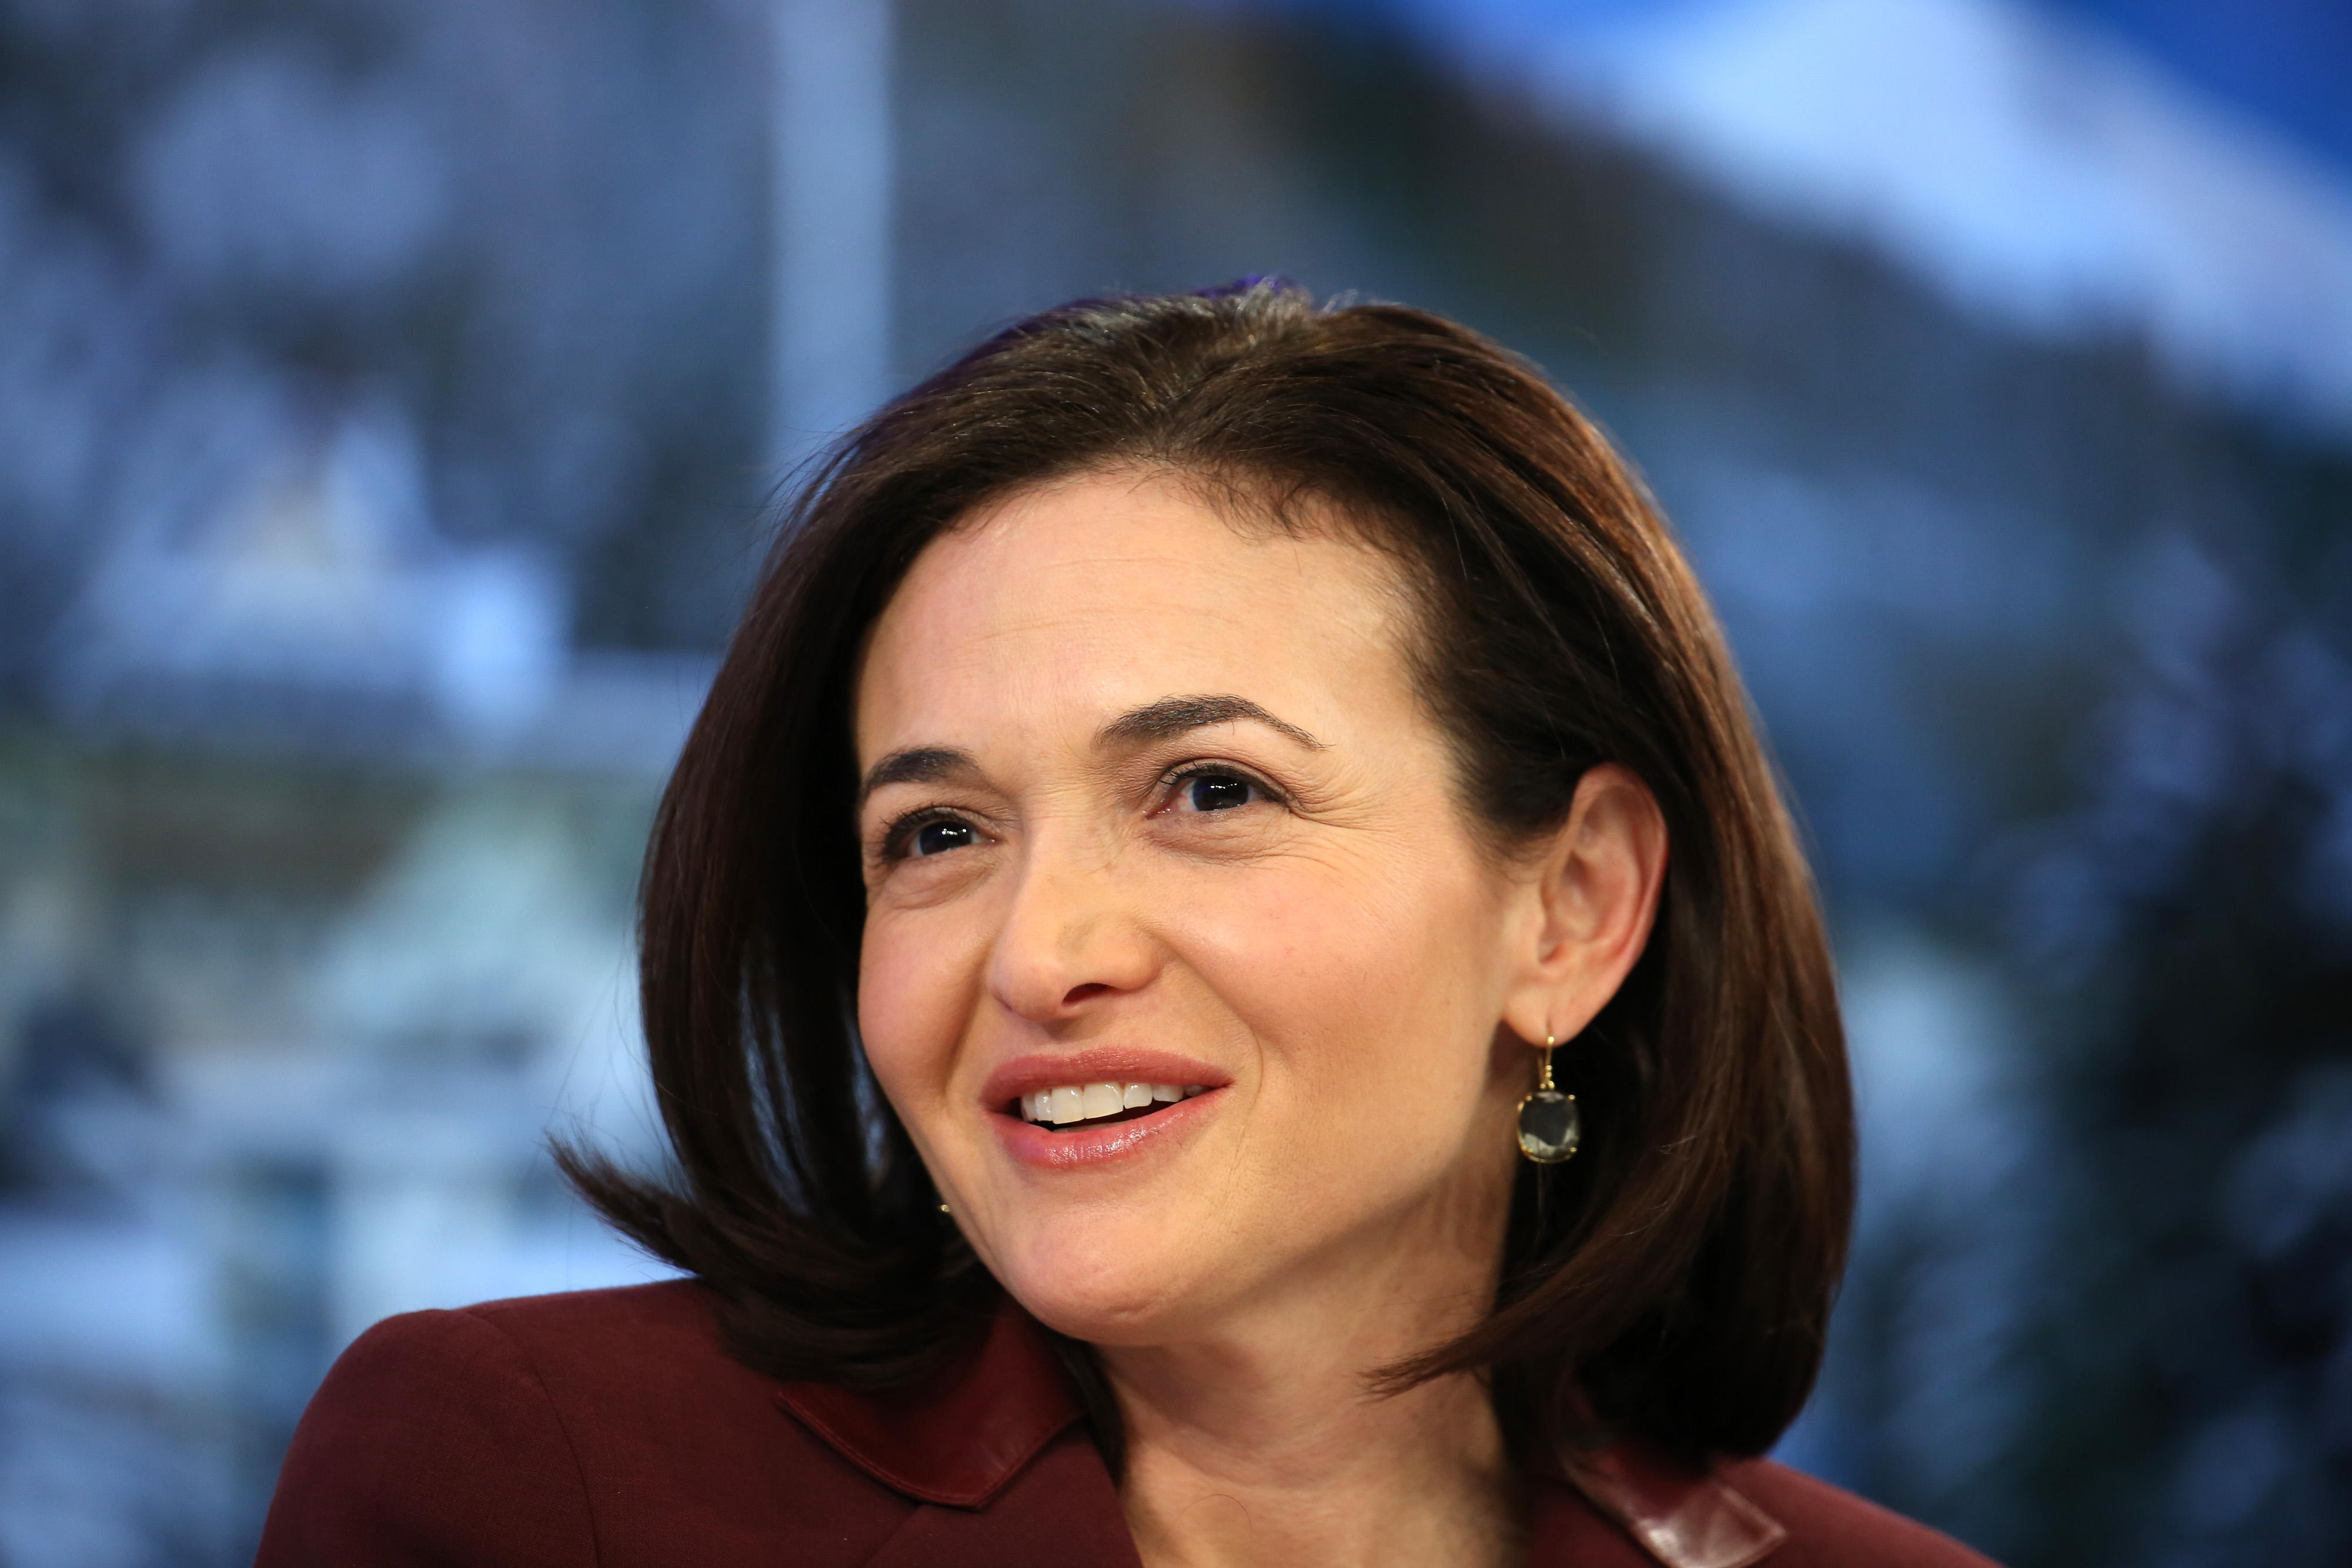 Sheryl Sandberg, billionaire and chief operating officer of Facebook Inc., pauses during a panel session on day four of the World Economic Forum (WEF) in Davos, Switzerland, on Saturday, Jan. 25, 2014.